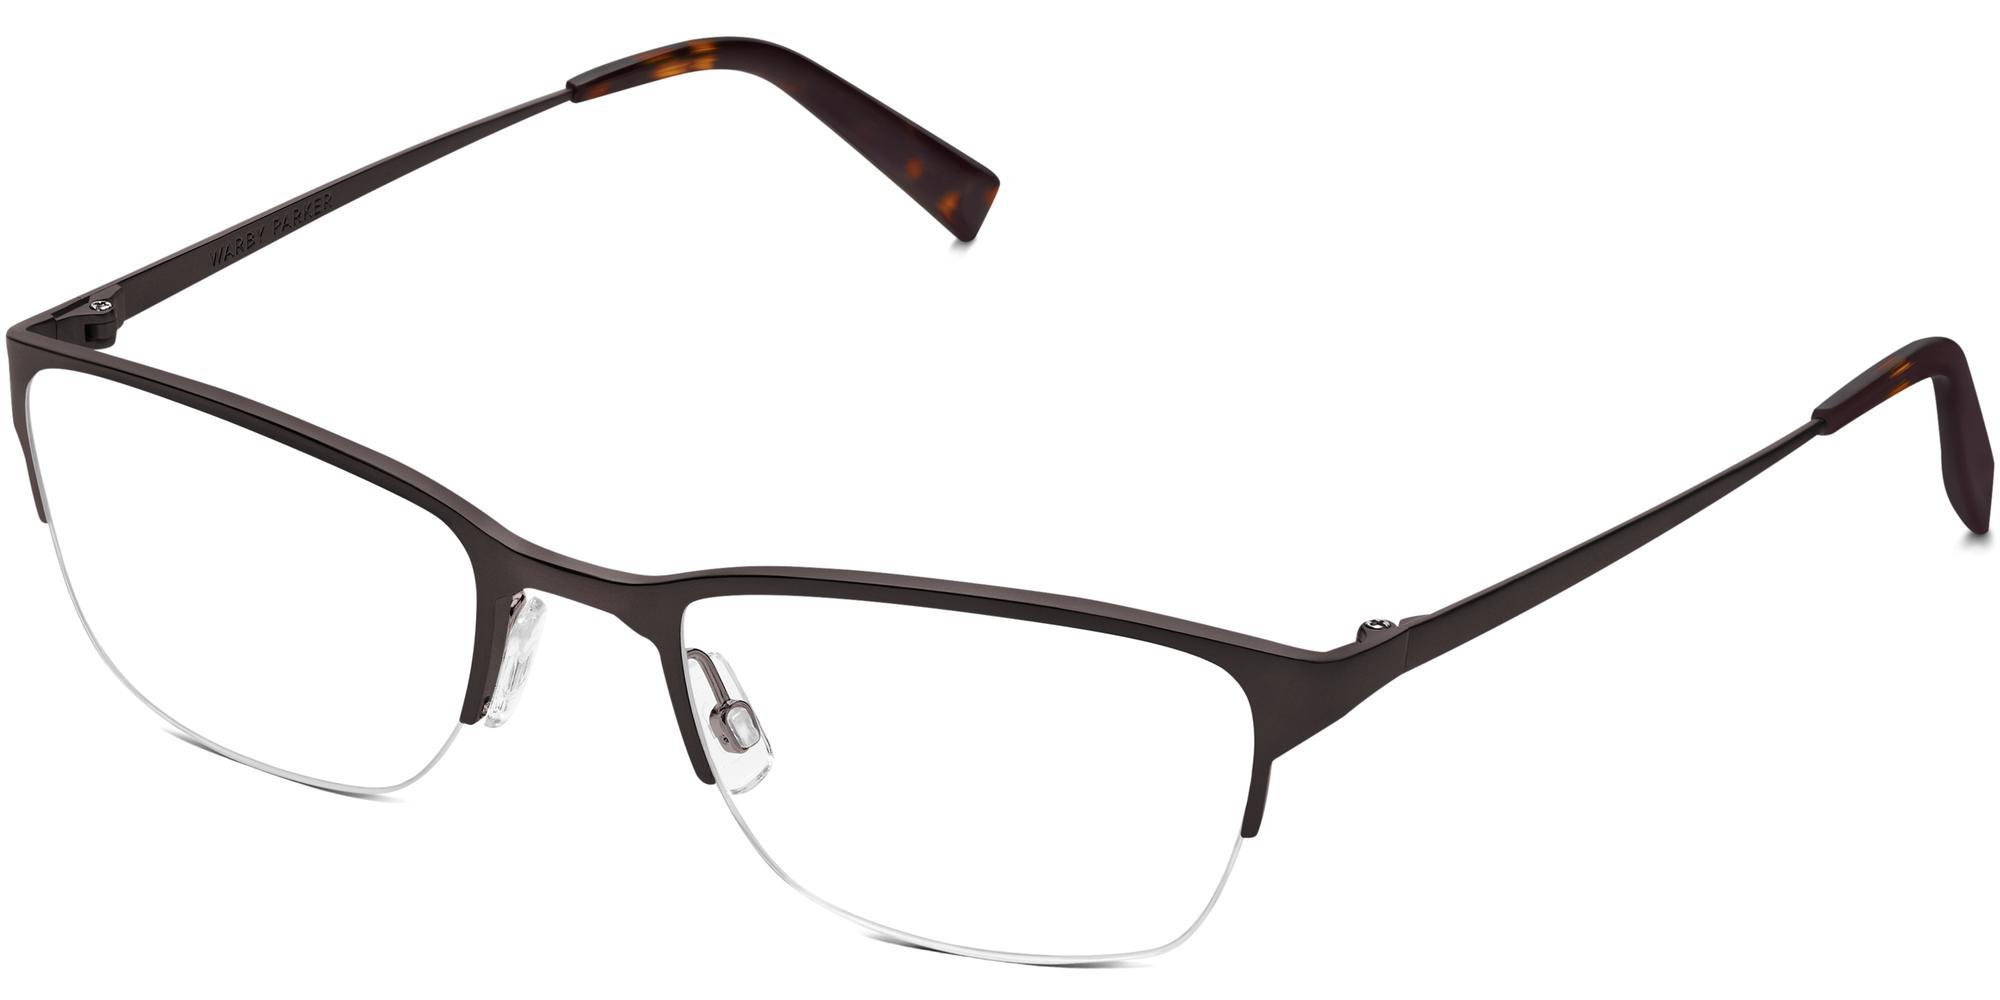 61912c0c2fac Lyst - Warby Parker Caldwell Eyeglasses for Men